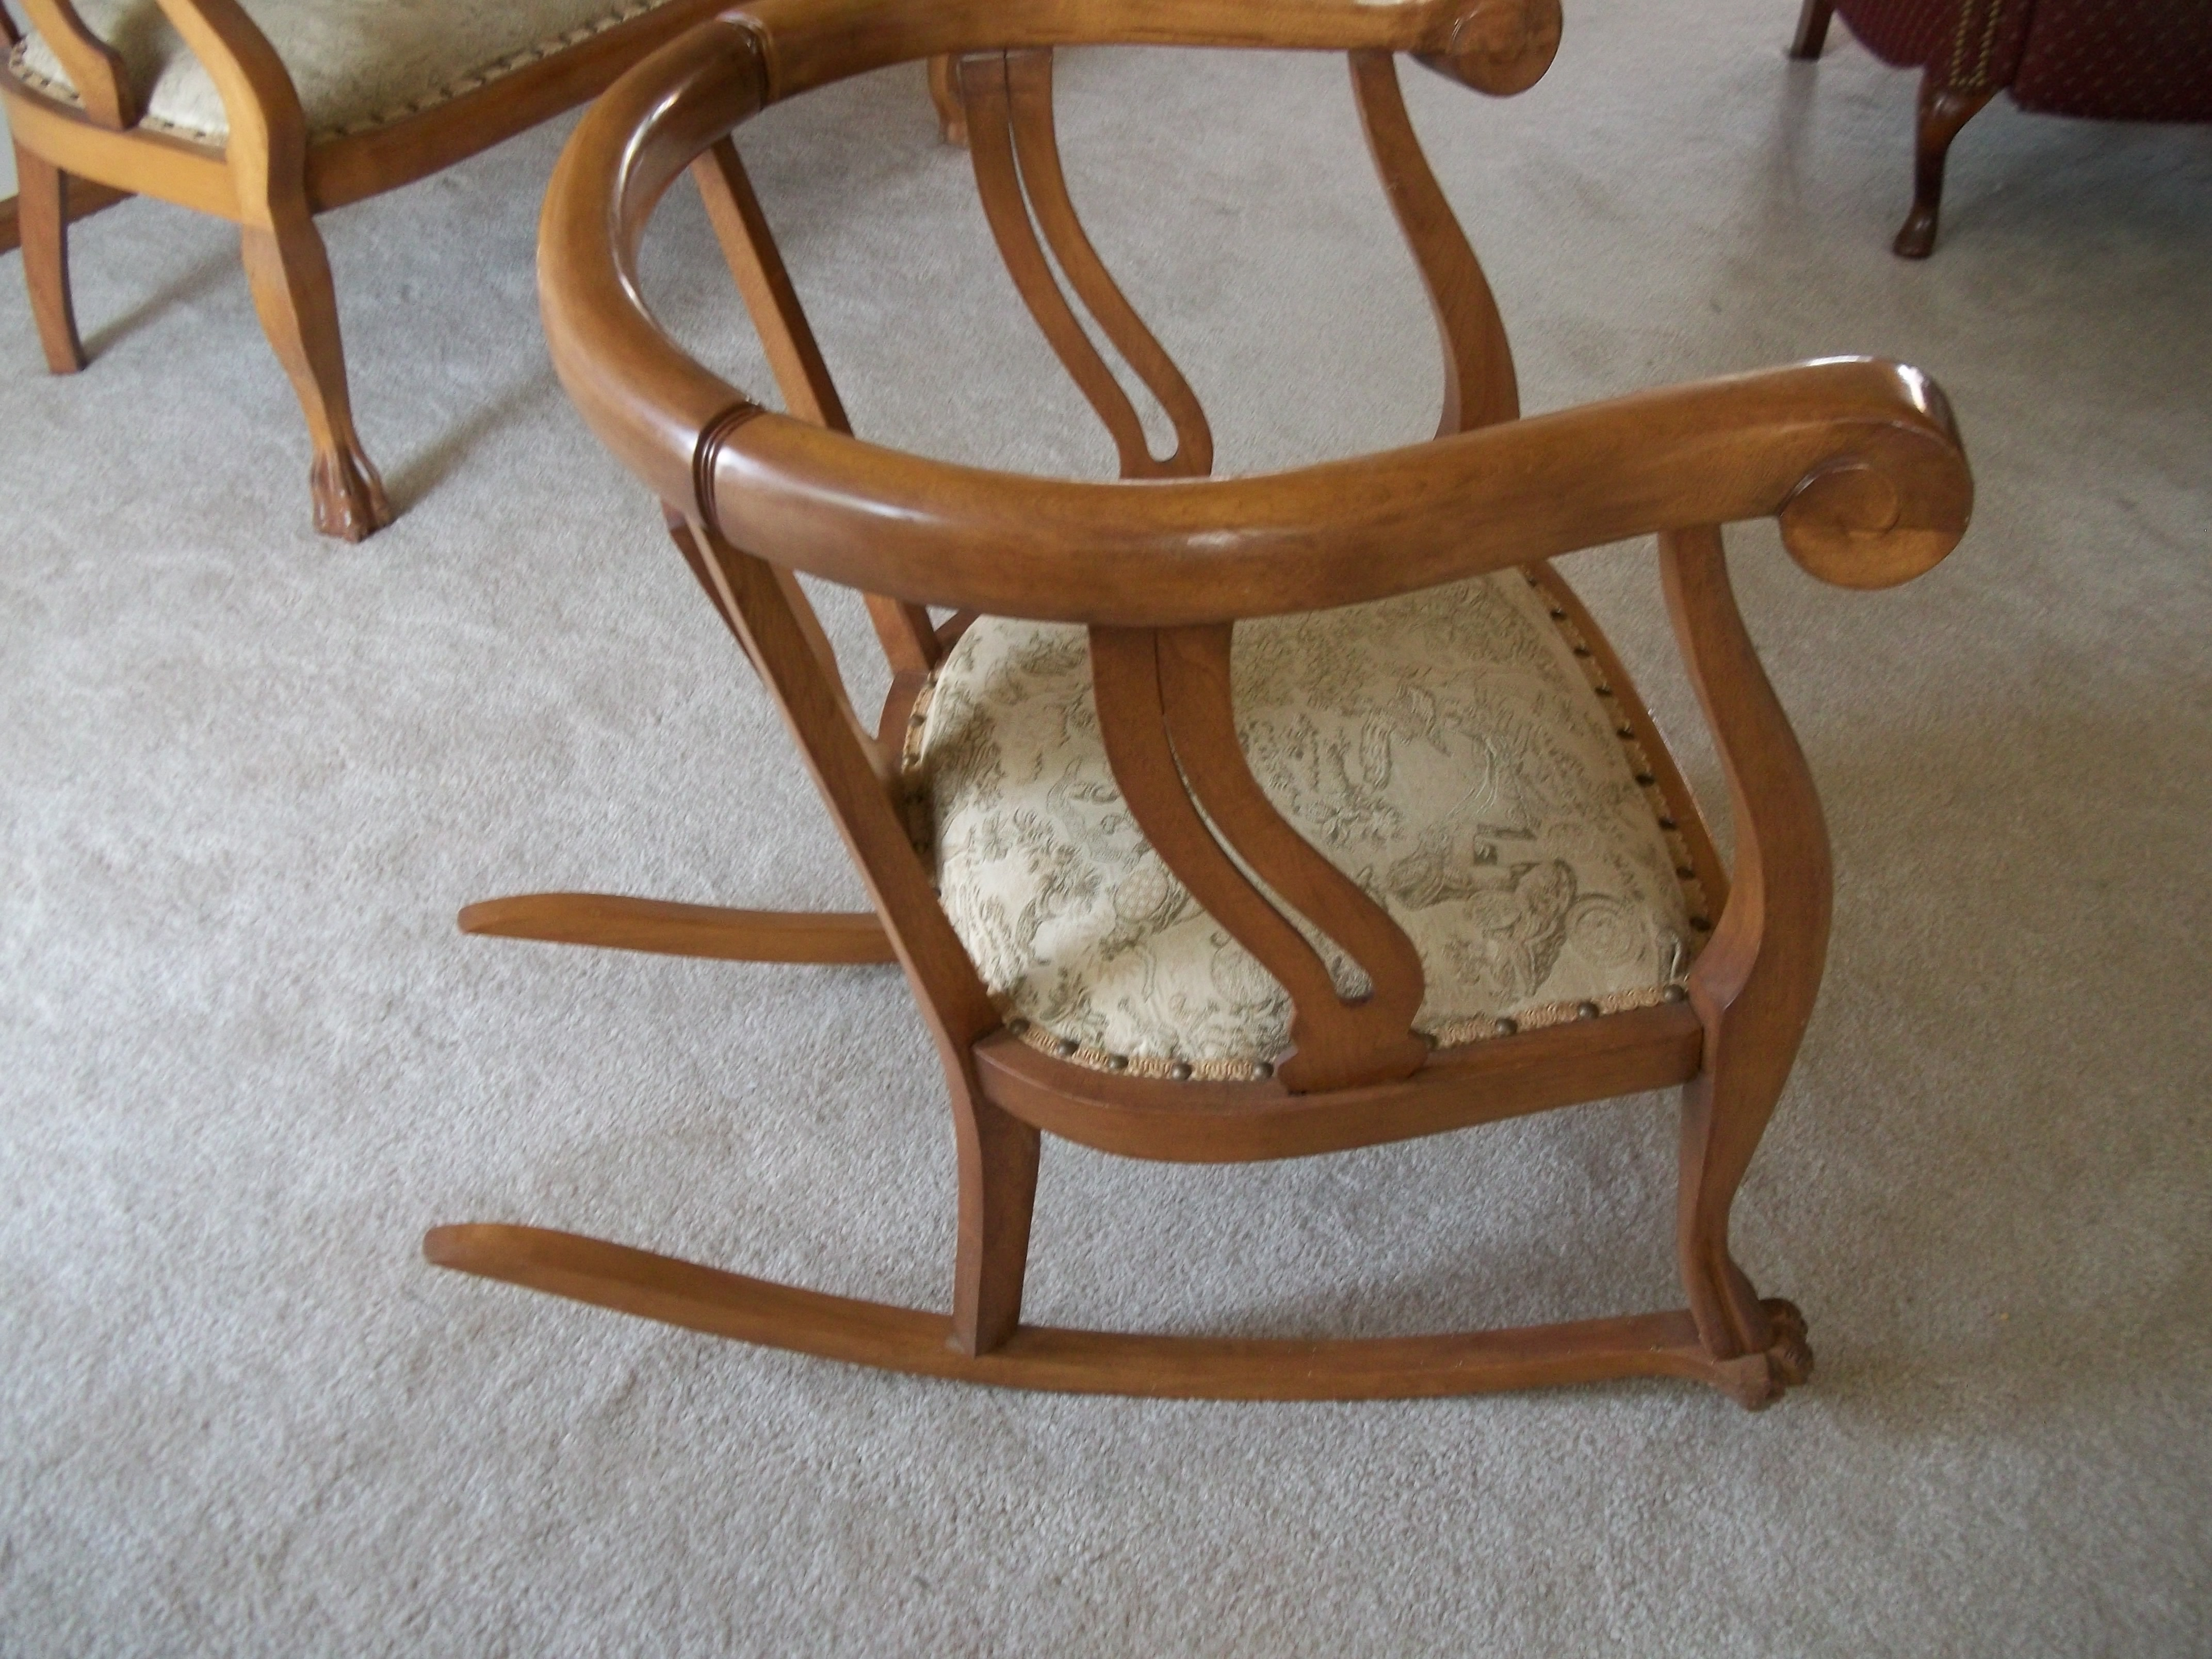 1920s rocking chair marlin fishing matching oak settee and era 1920 s for sale antiques this beautiful duo is just waiting to showcase any area you choose the pair are in excellent condition sturdy ll get lots of compliments on